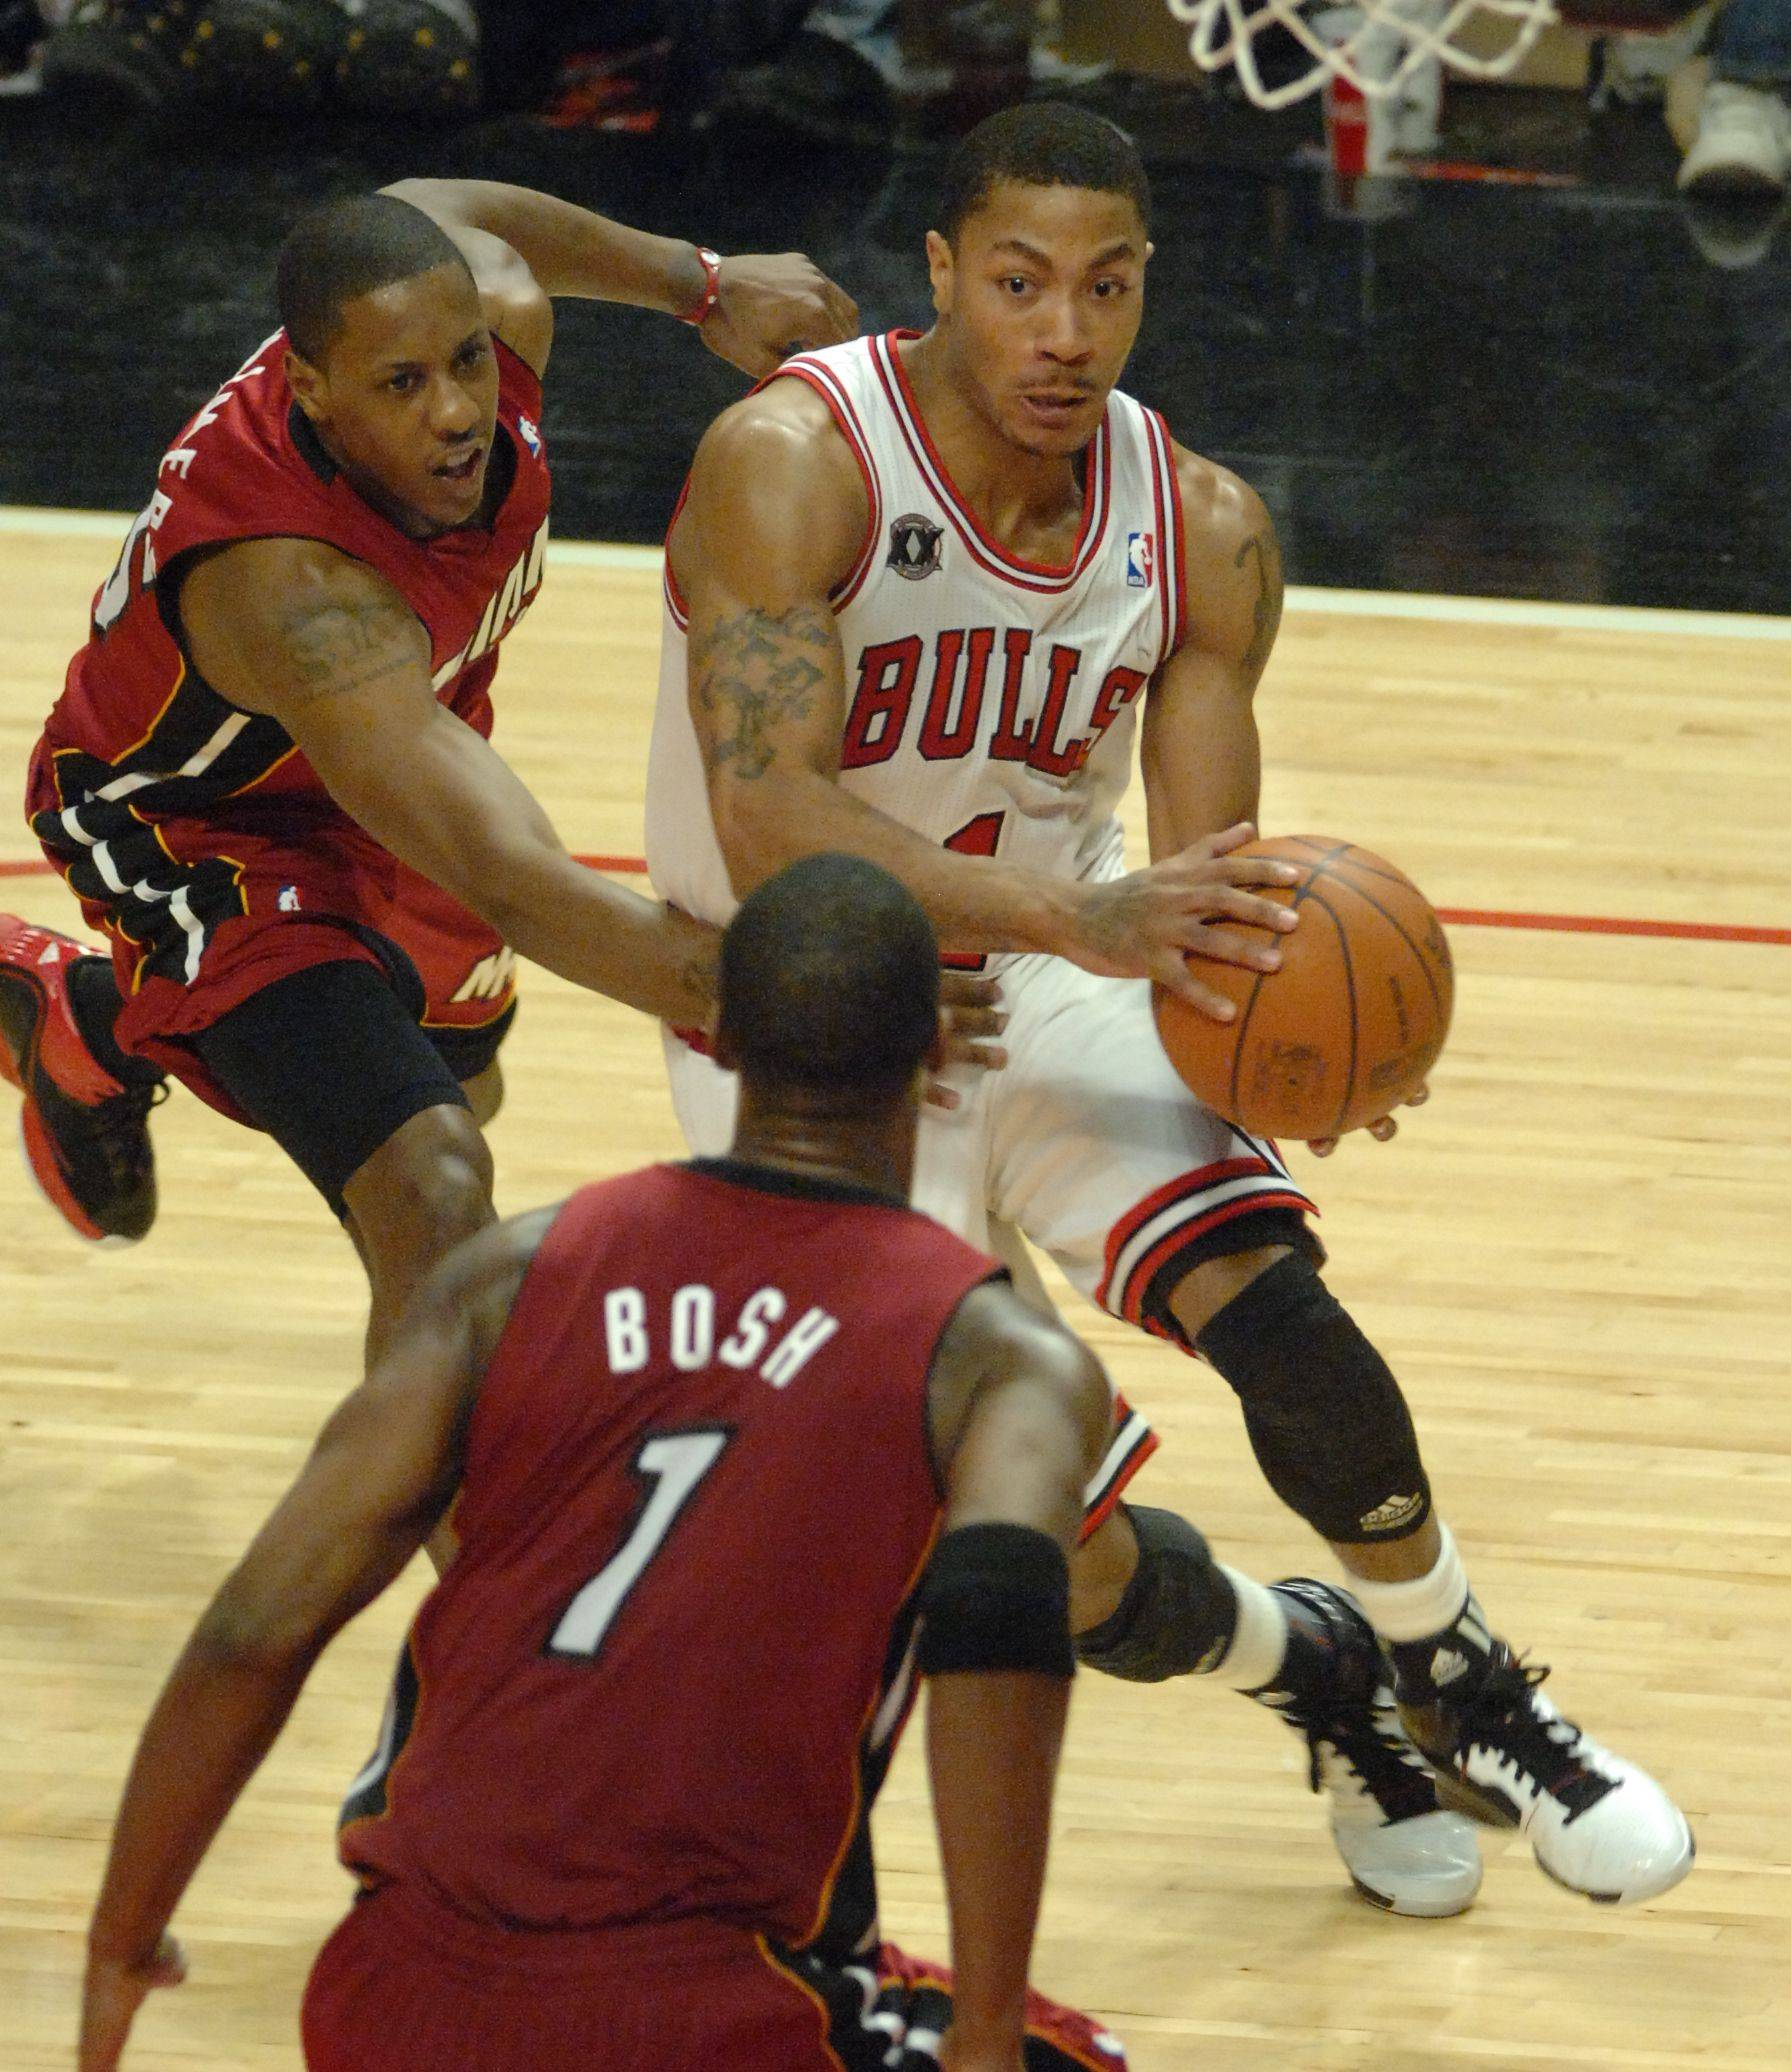 Derrick Rose drives to the basket in the third quarter past Mario Chalmers and into Chirs Bosh during Saturday's game at the United Center against the Miami Heat.